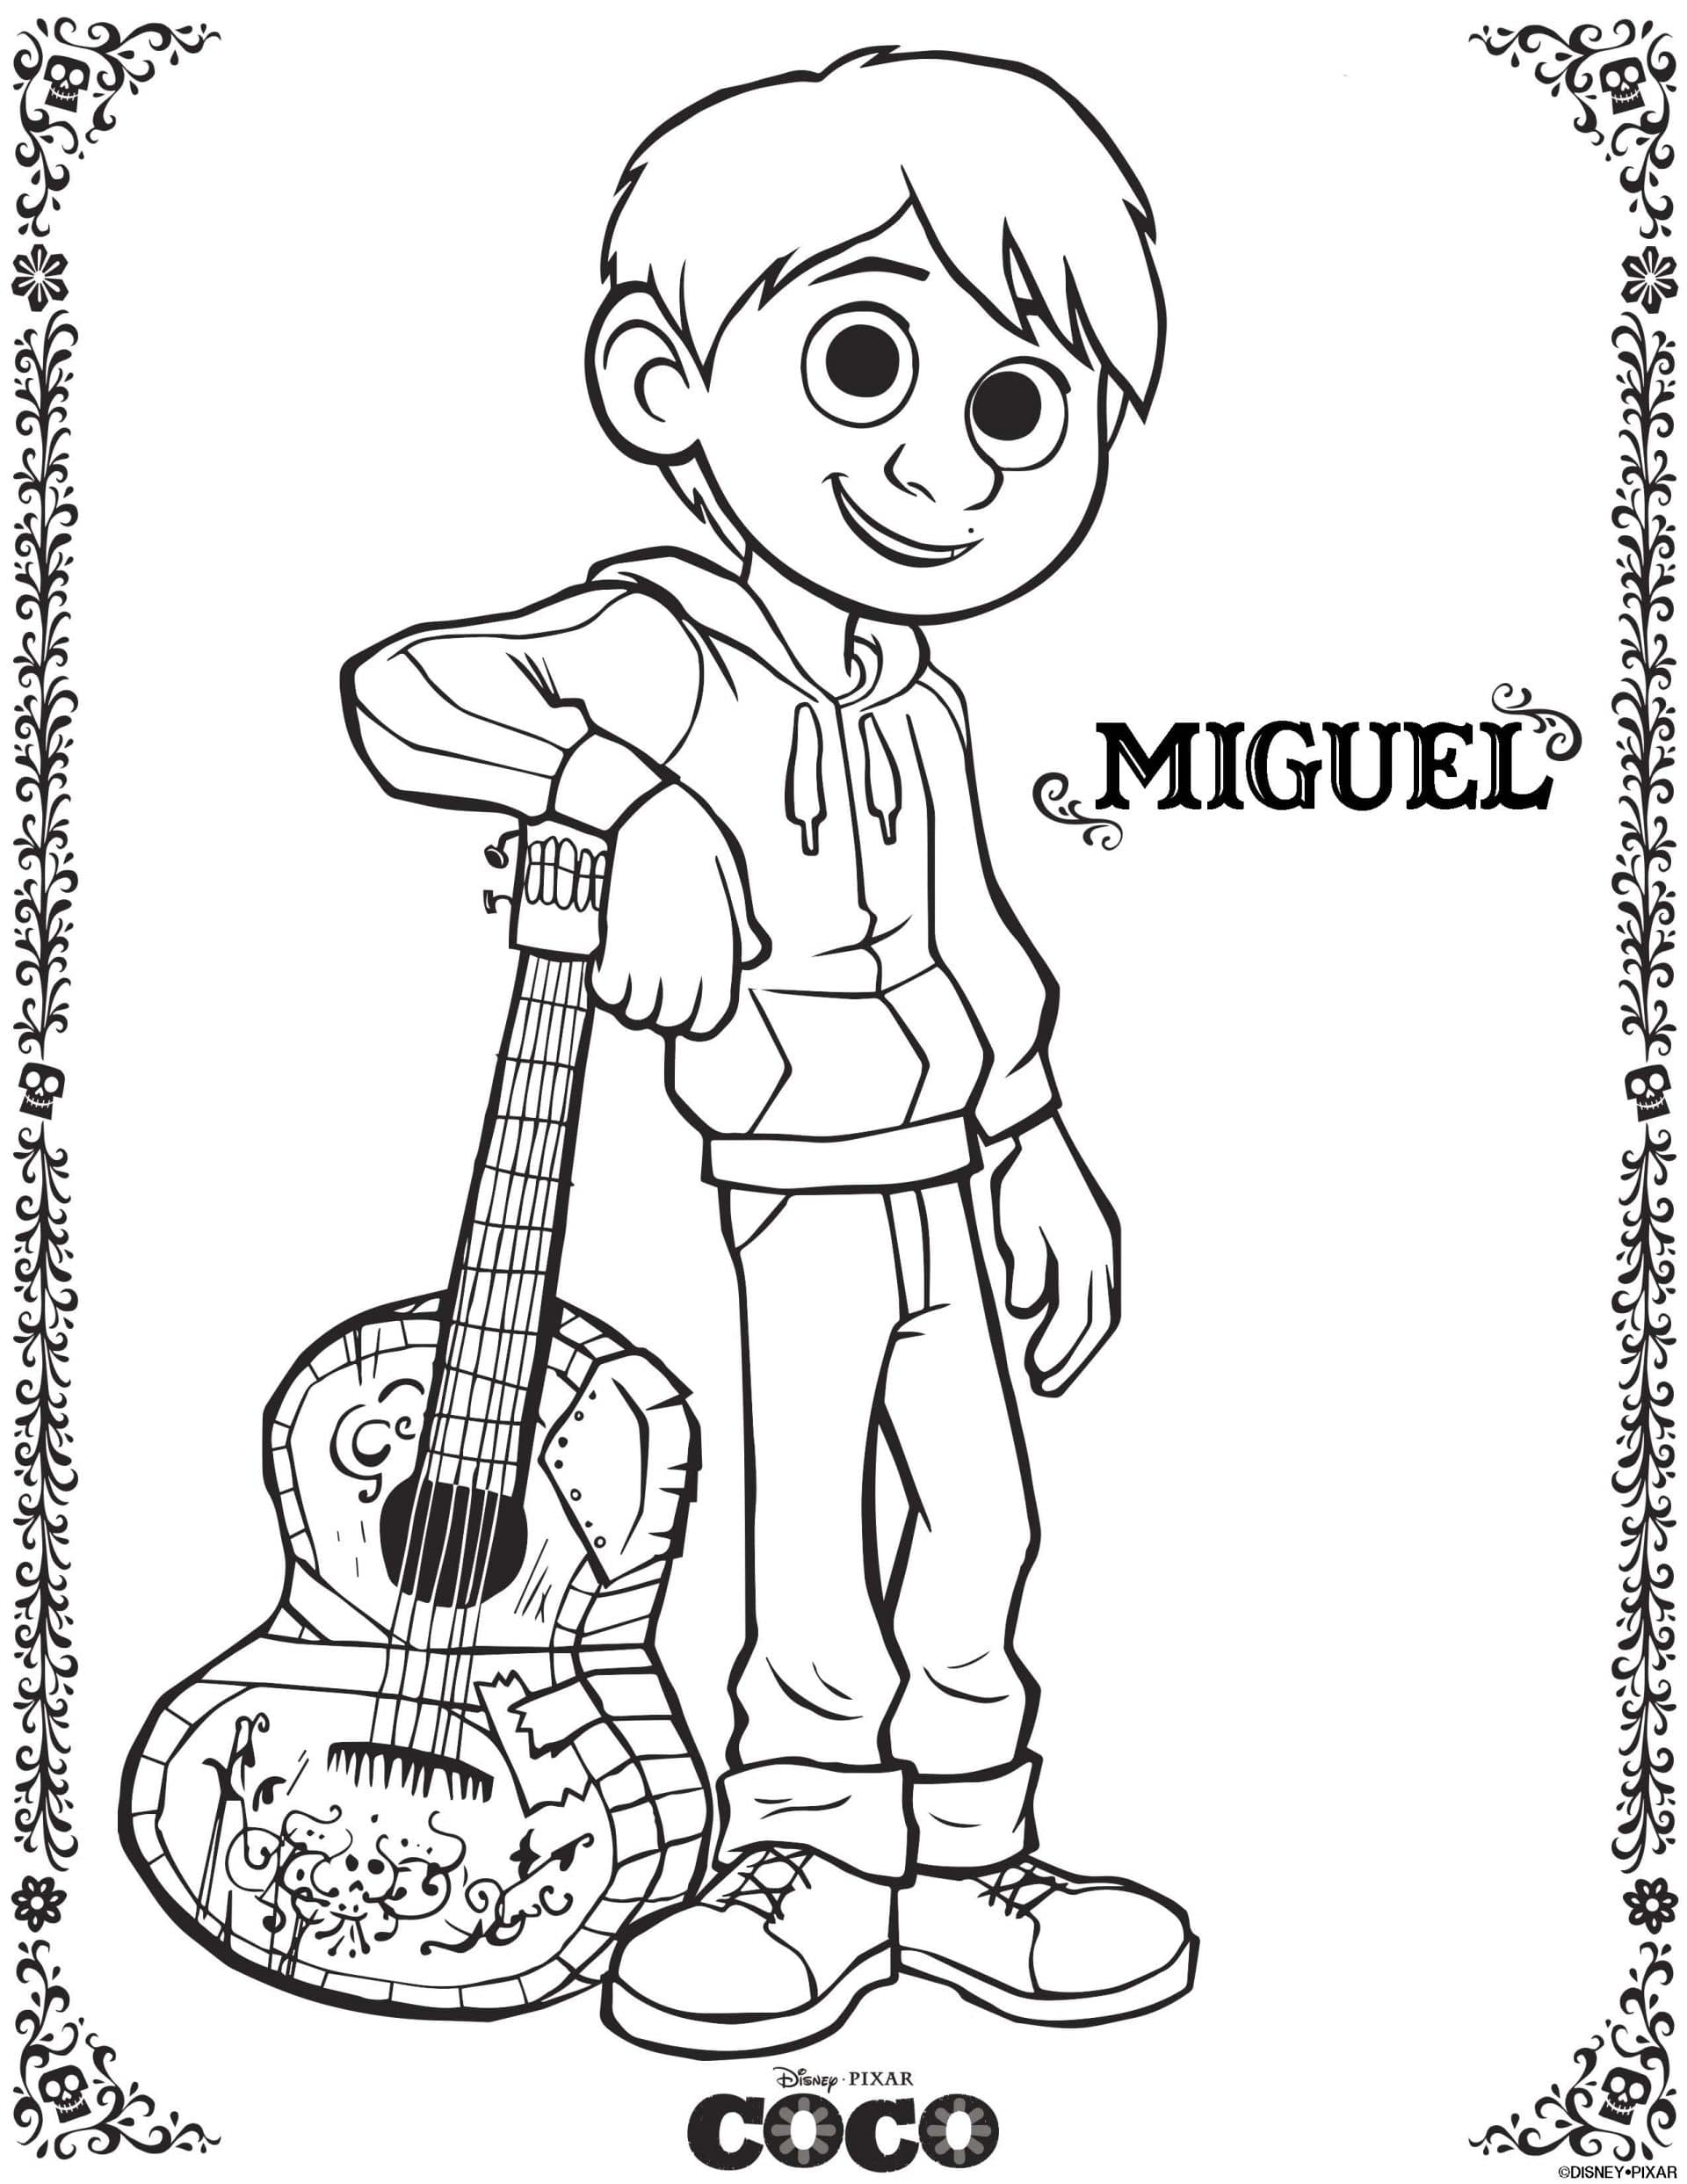 Coco Coloring Pages - Miguel